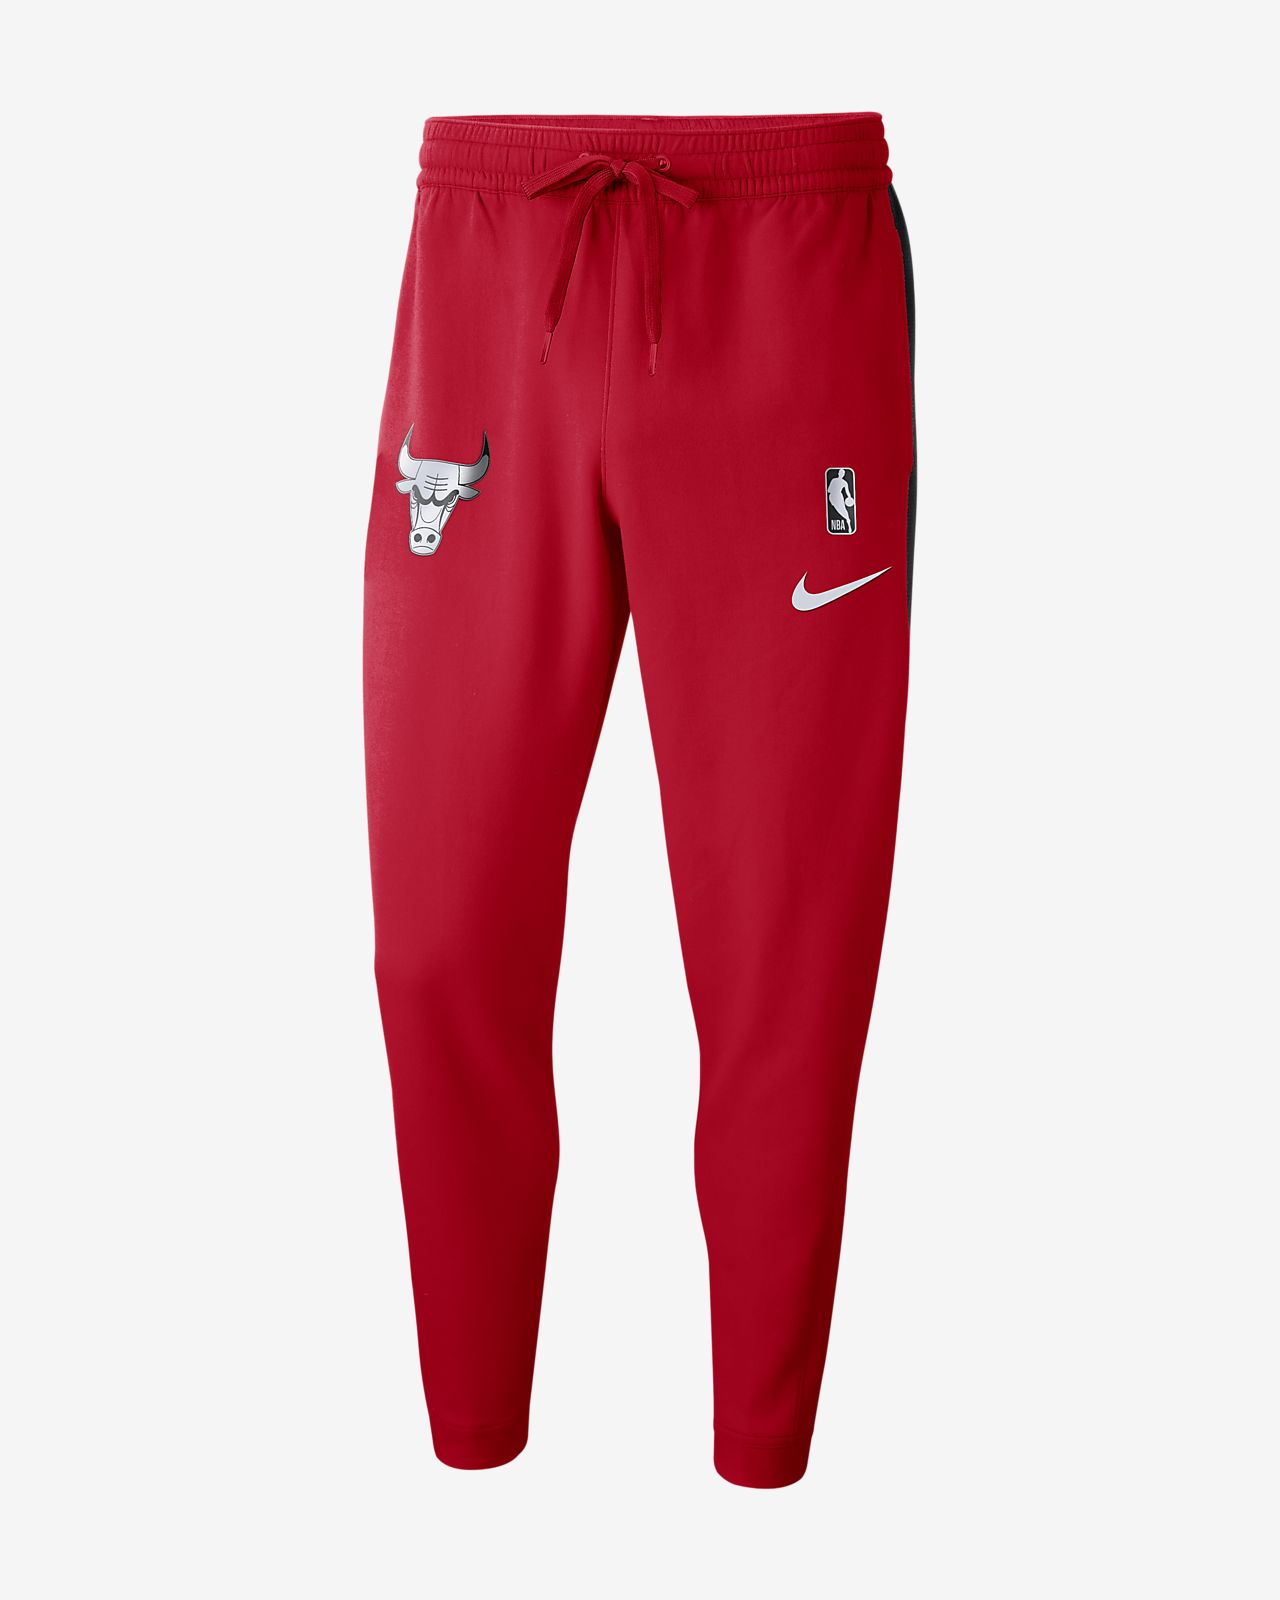 0f16a94b1798 Chicago Bulls Nike Dri-FIT Showtime Men s NBA Trousers. Nike.com ZA